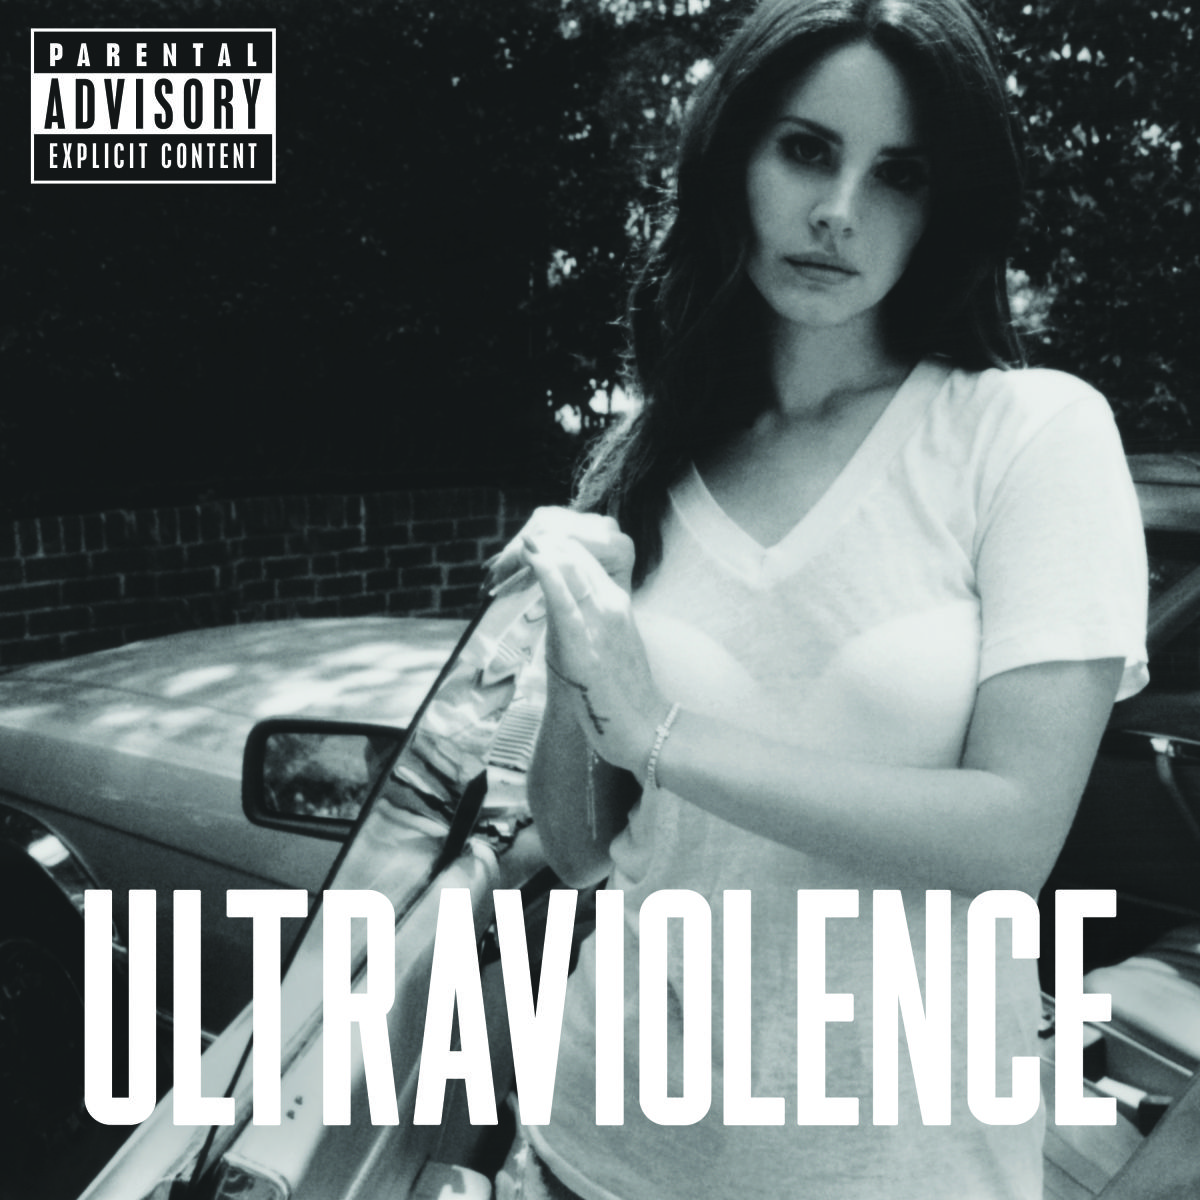 Lana Del Rey, Ultraviolence - pretty excited bc I just pre-ordered this bad boy. Can't wait to get the whole album on June 17th!!!